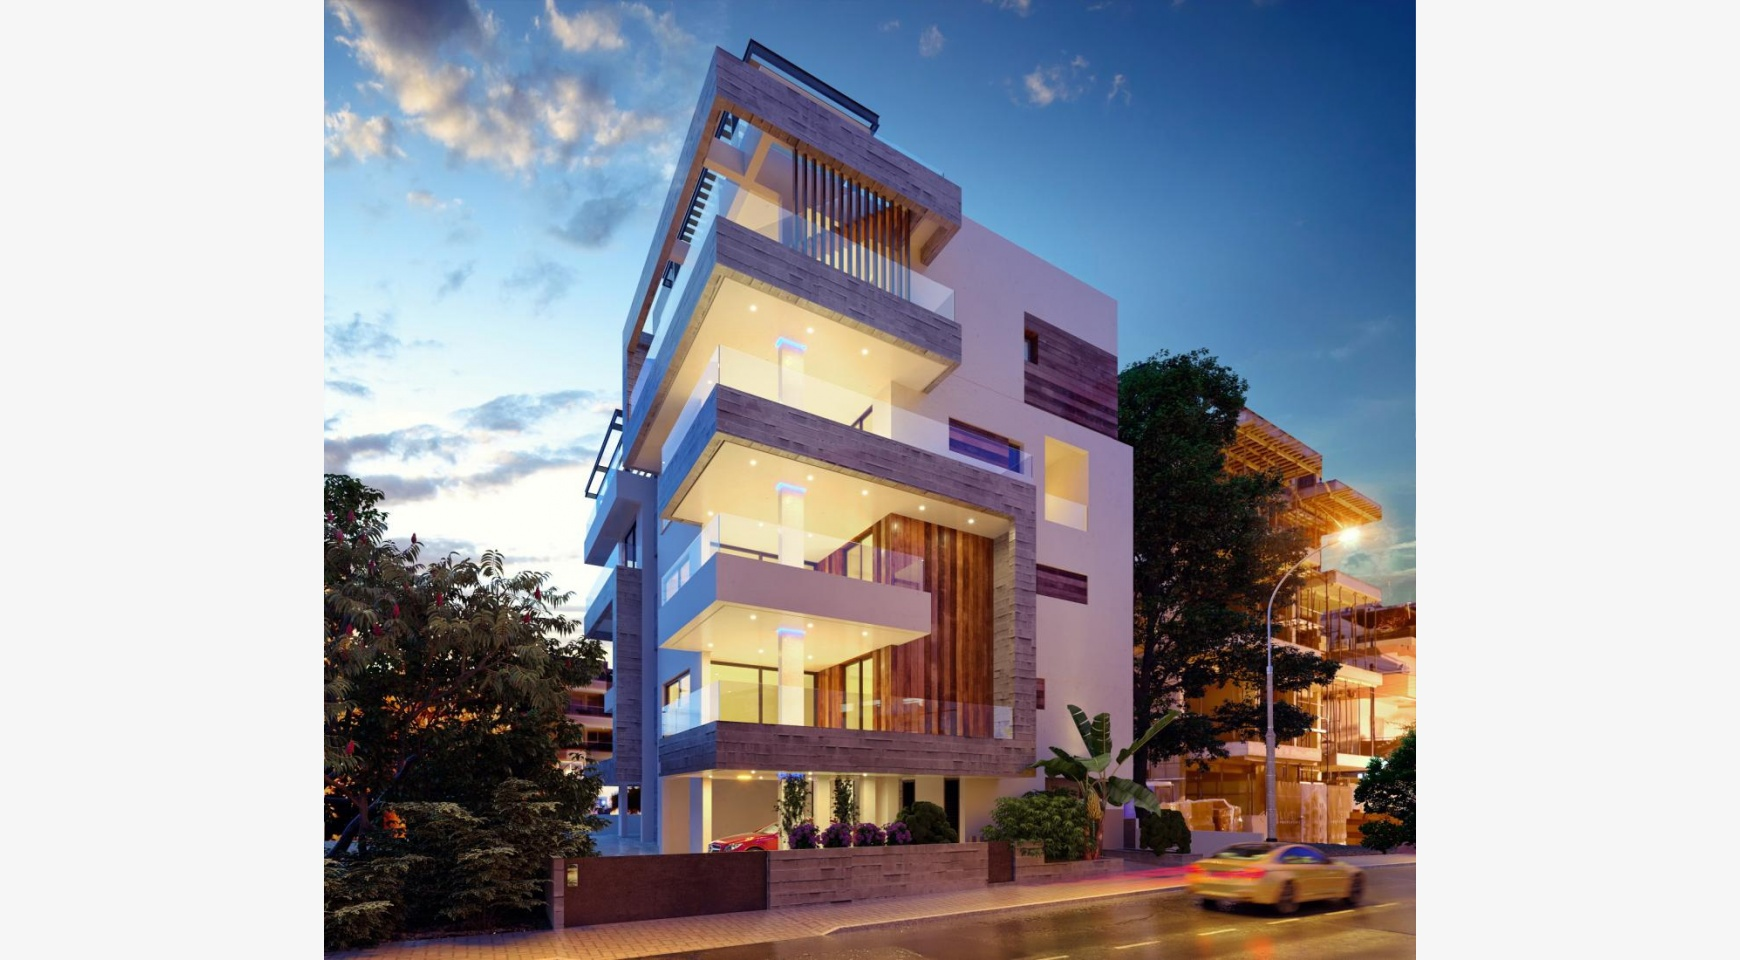 3 Bedroom Penthouse with a Private Pool in a Contemporary Building near the Sea - 1